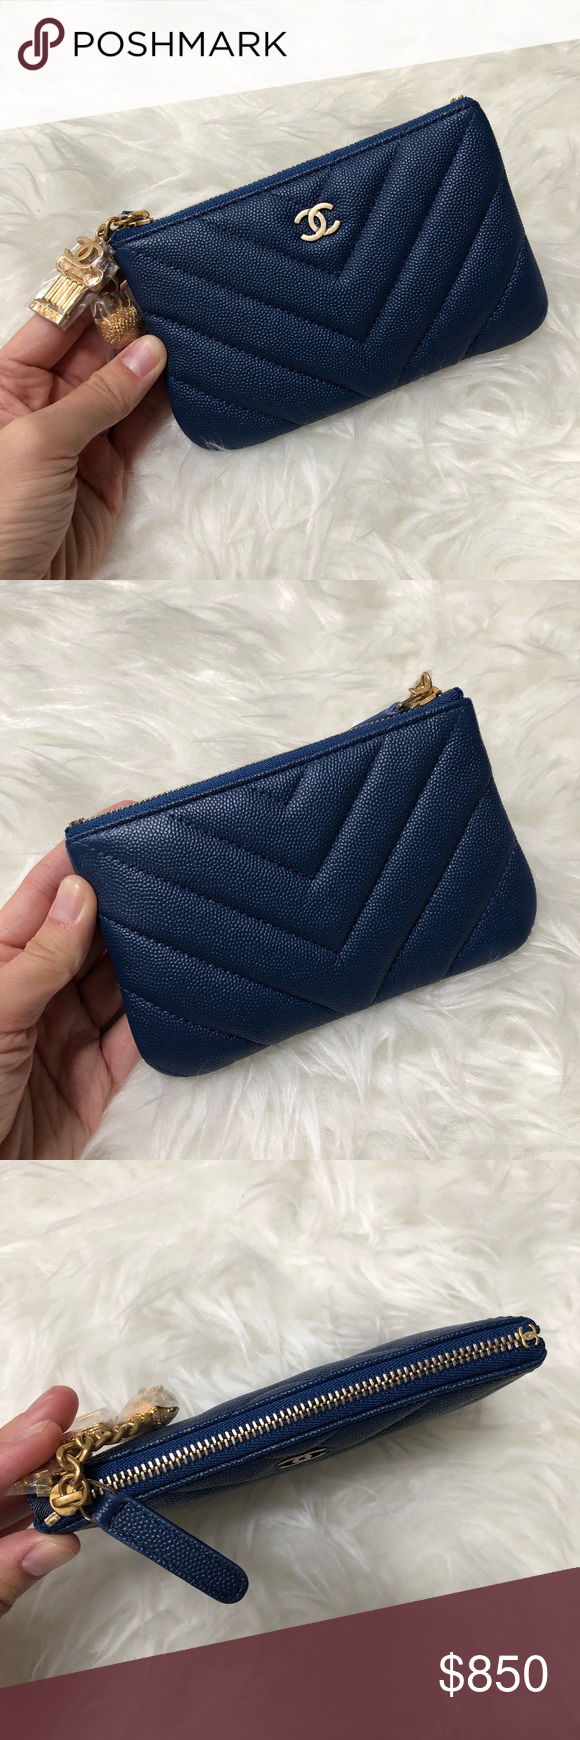 d1c840e99b96 CHANEL NAVY CAVIAR MINI O CASE POUCH WALLET Brand new! From next Cruise  2018 collection. Caviar navy leather with gold hardware. Super cute charms!